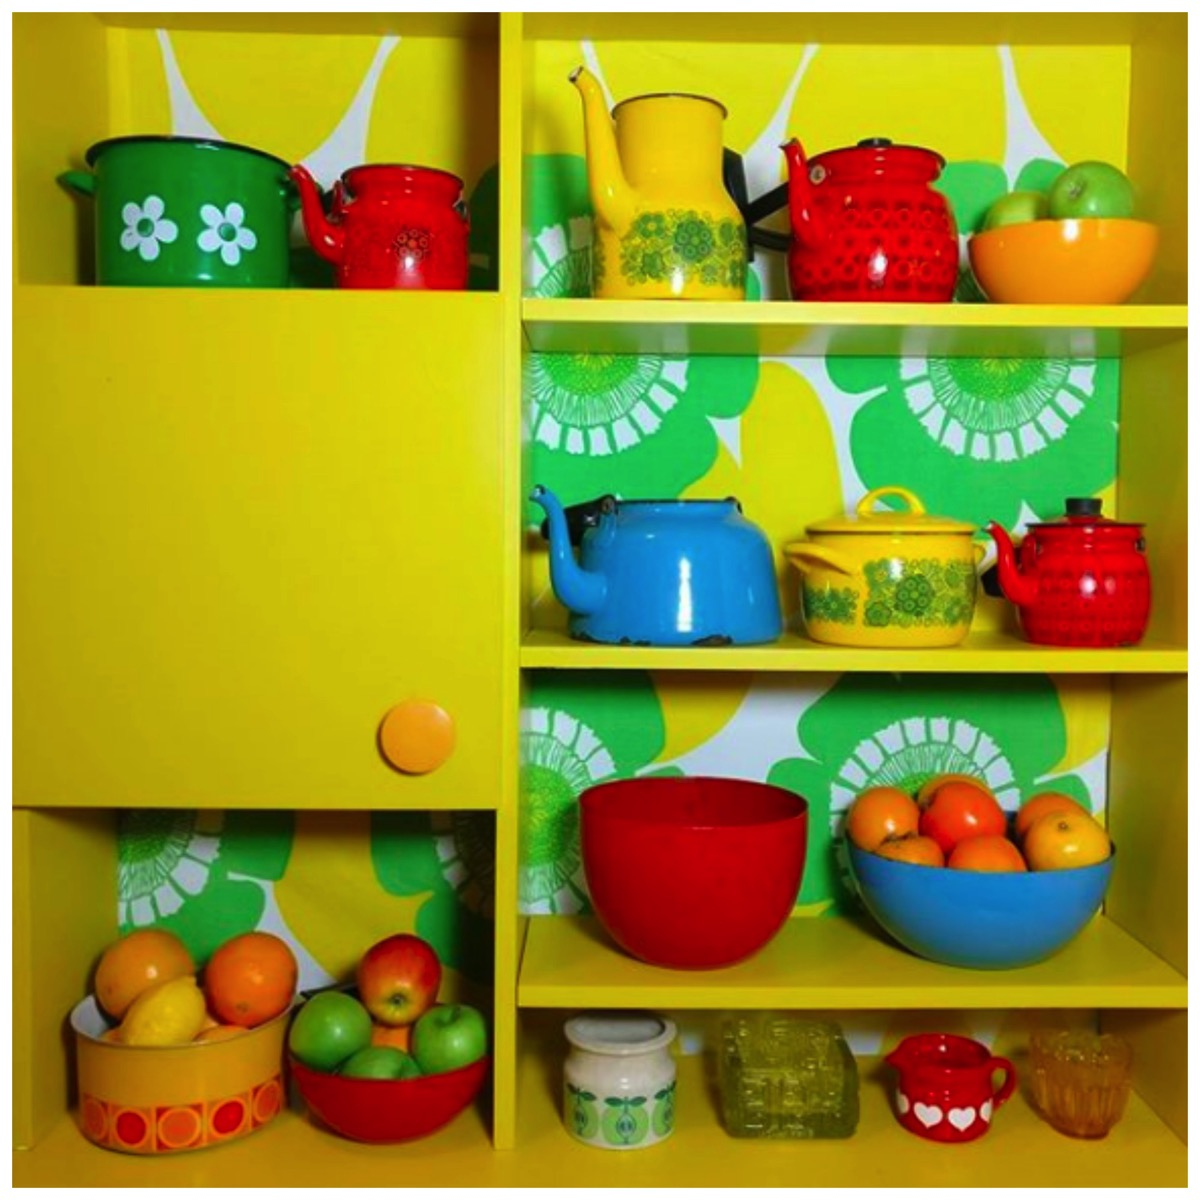 Bright yellow retro kitchen and shelfie